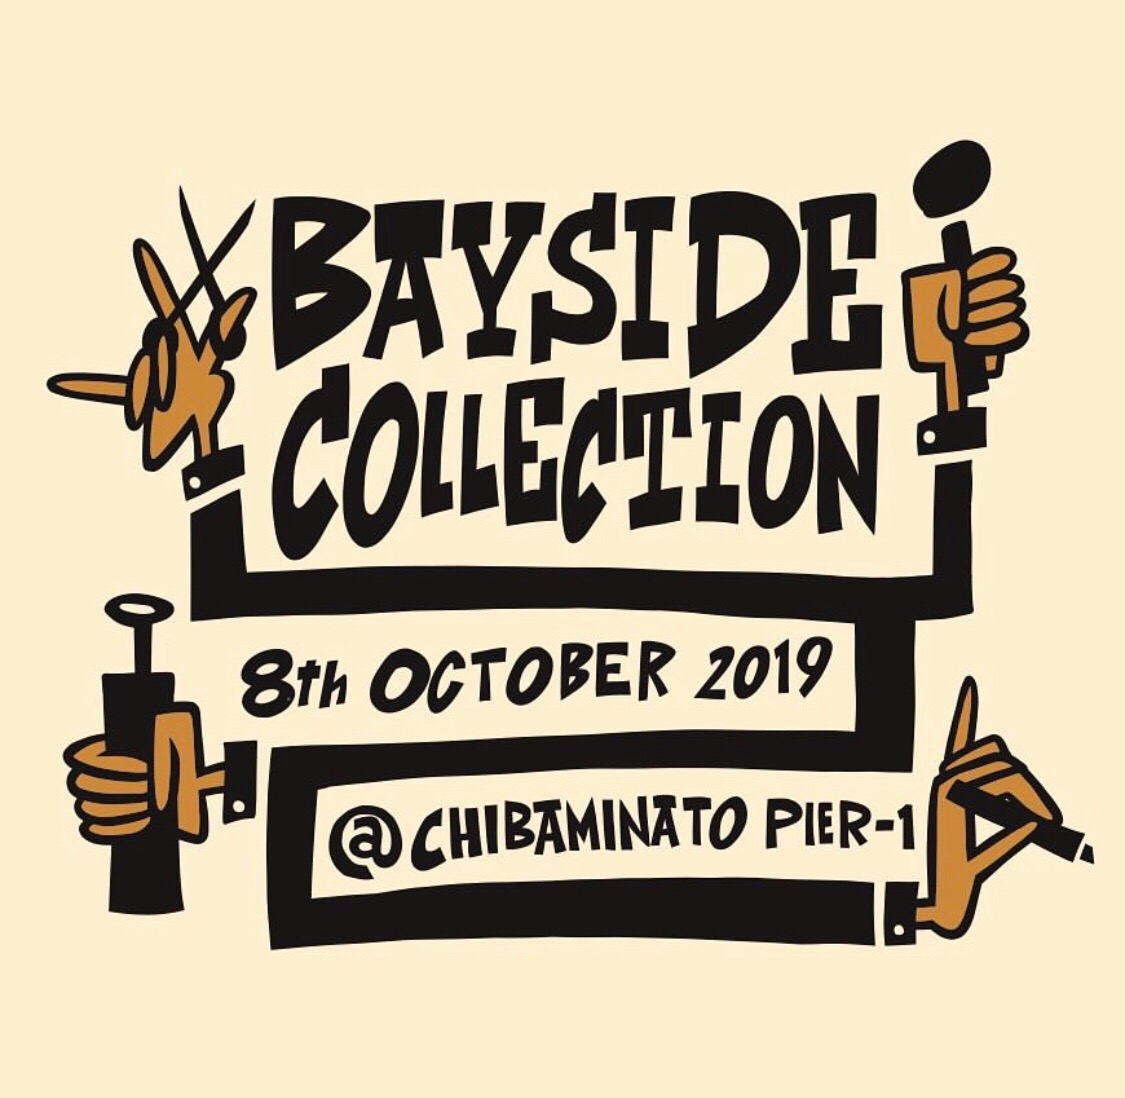 BAYSIDE COLLECTION2019